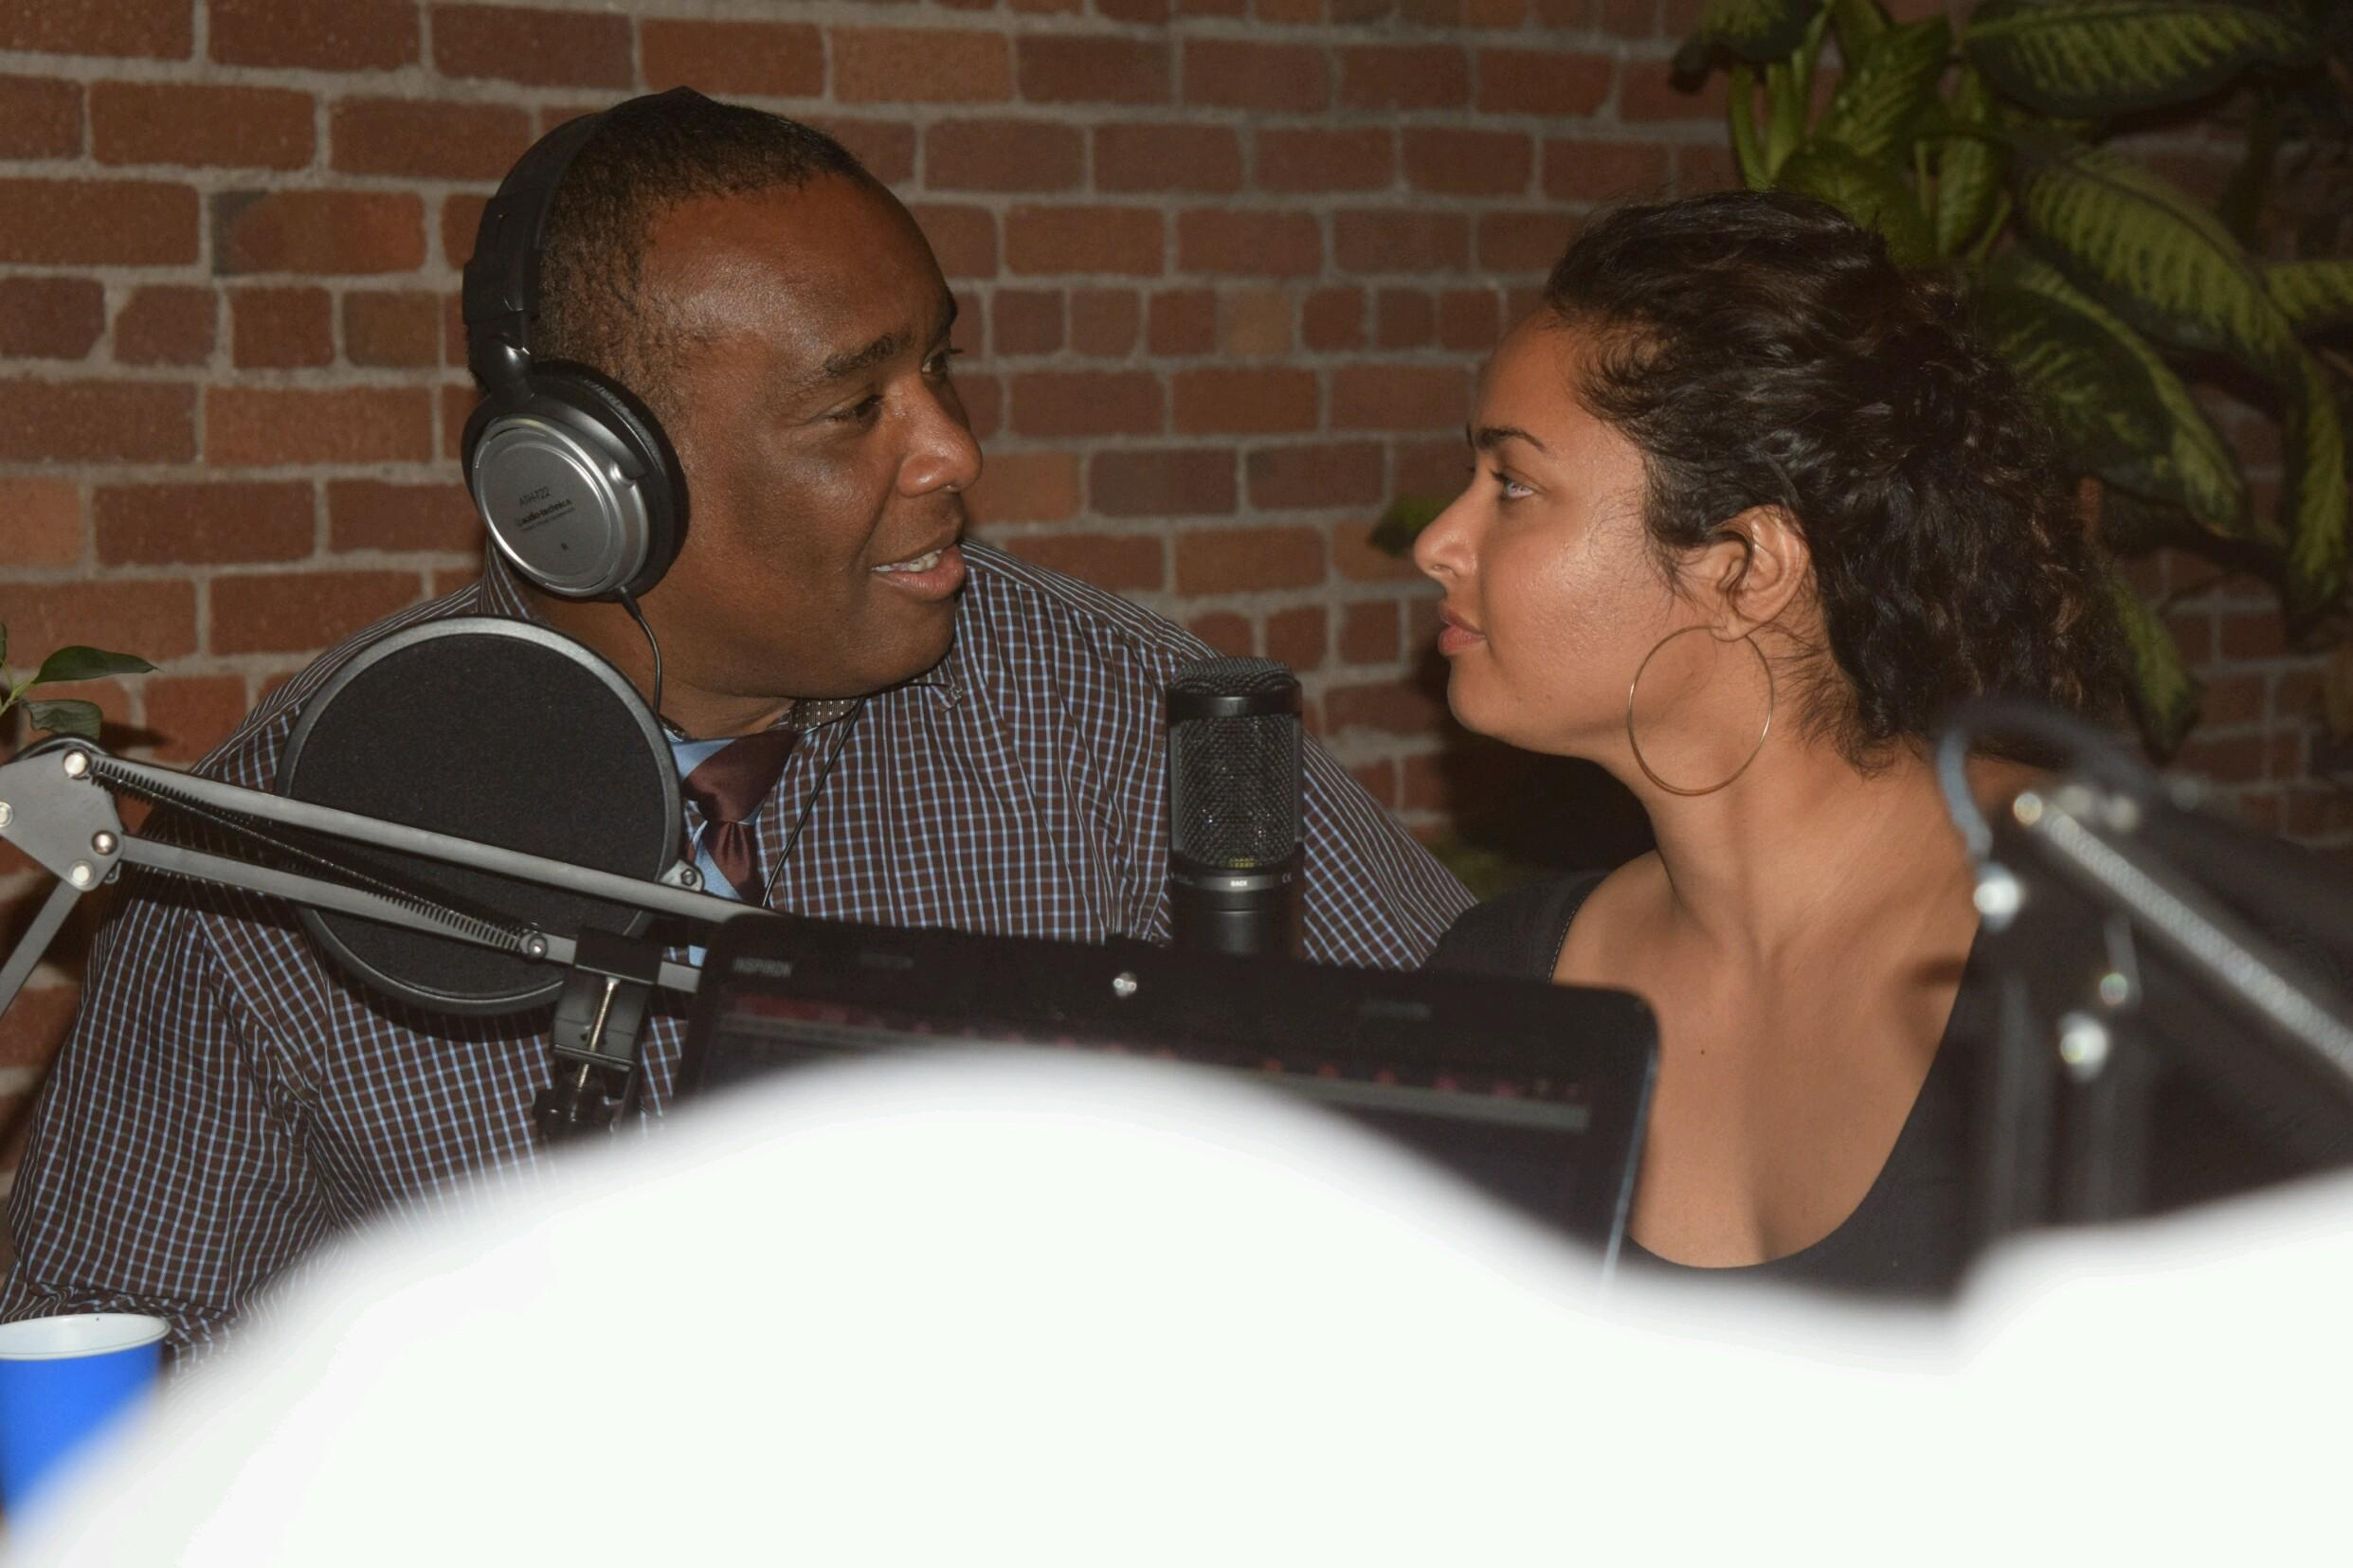 Ebony and slightly less ebony talk together in podcast harmony